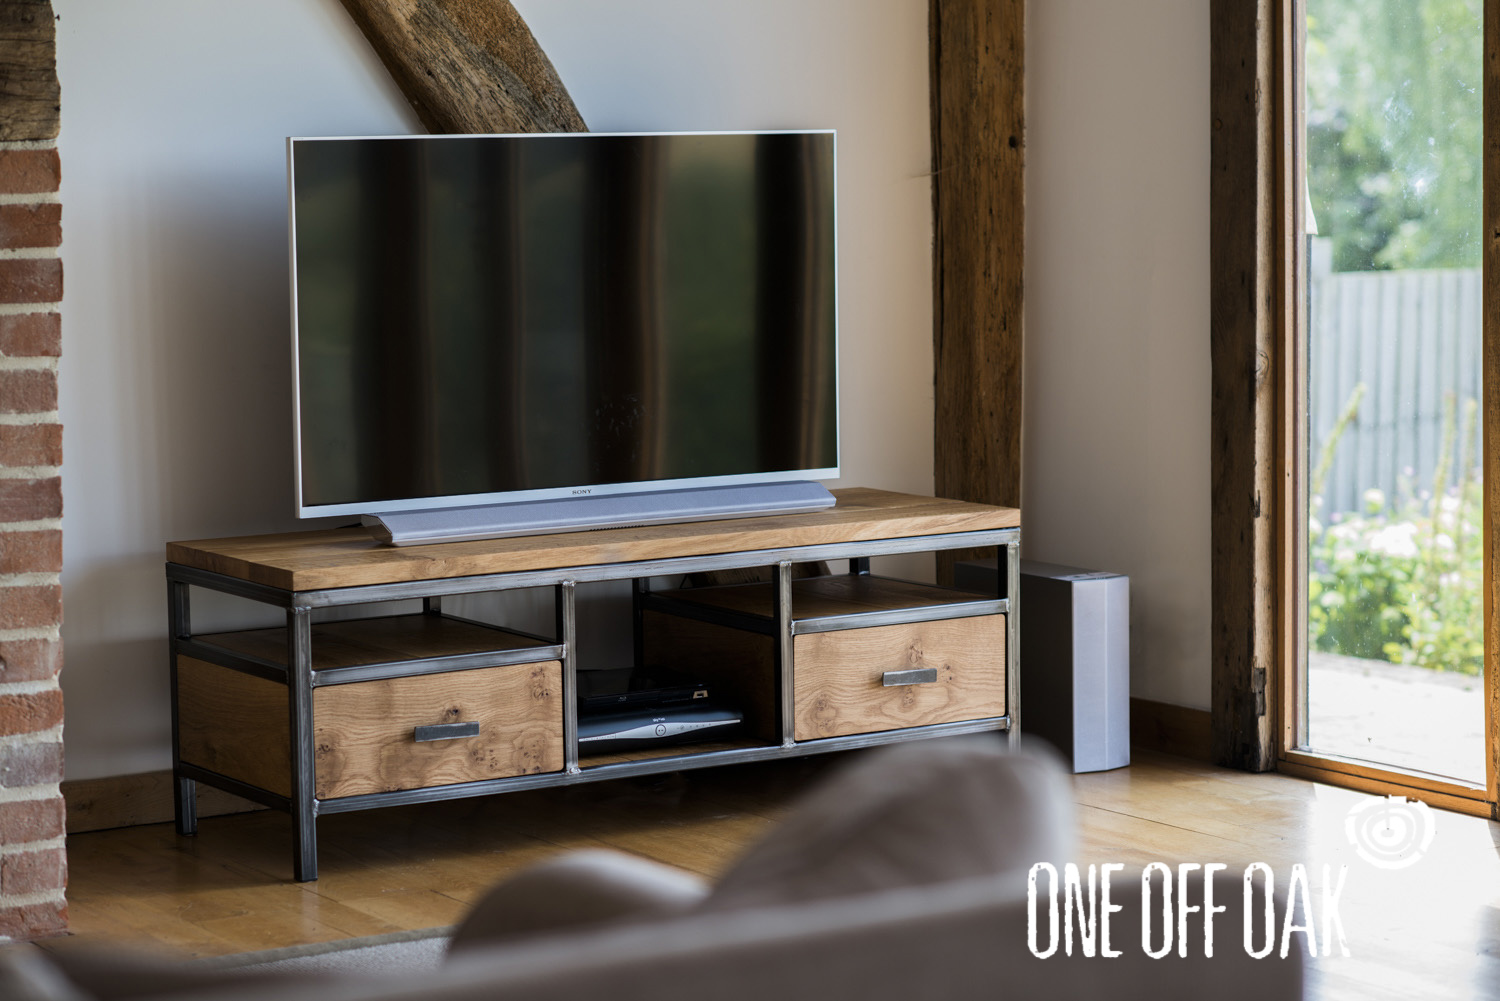 Ordinaire This Bespoke TV Cabinet Was Commissioned For A Client Who Was Fed Up Of  Seeing Their Sky Box, Dvd Player And Associated Cables In A Messy Pile.